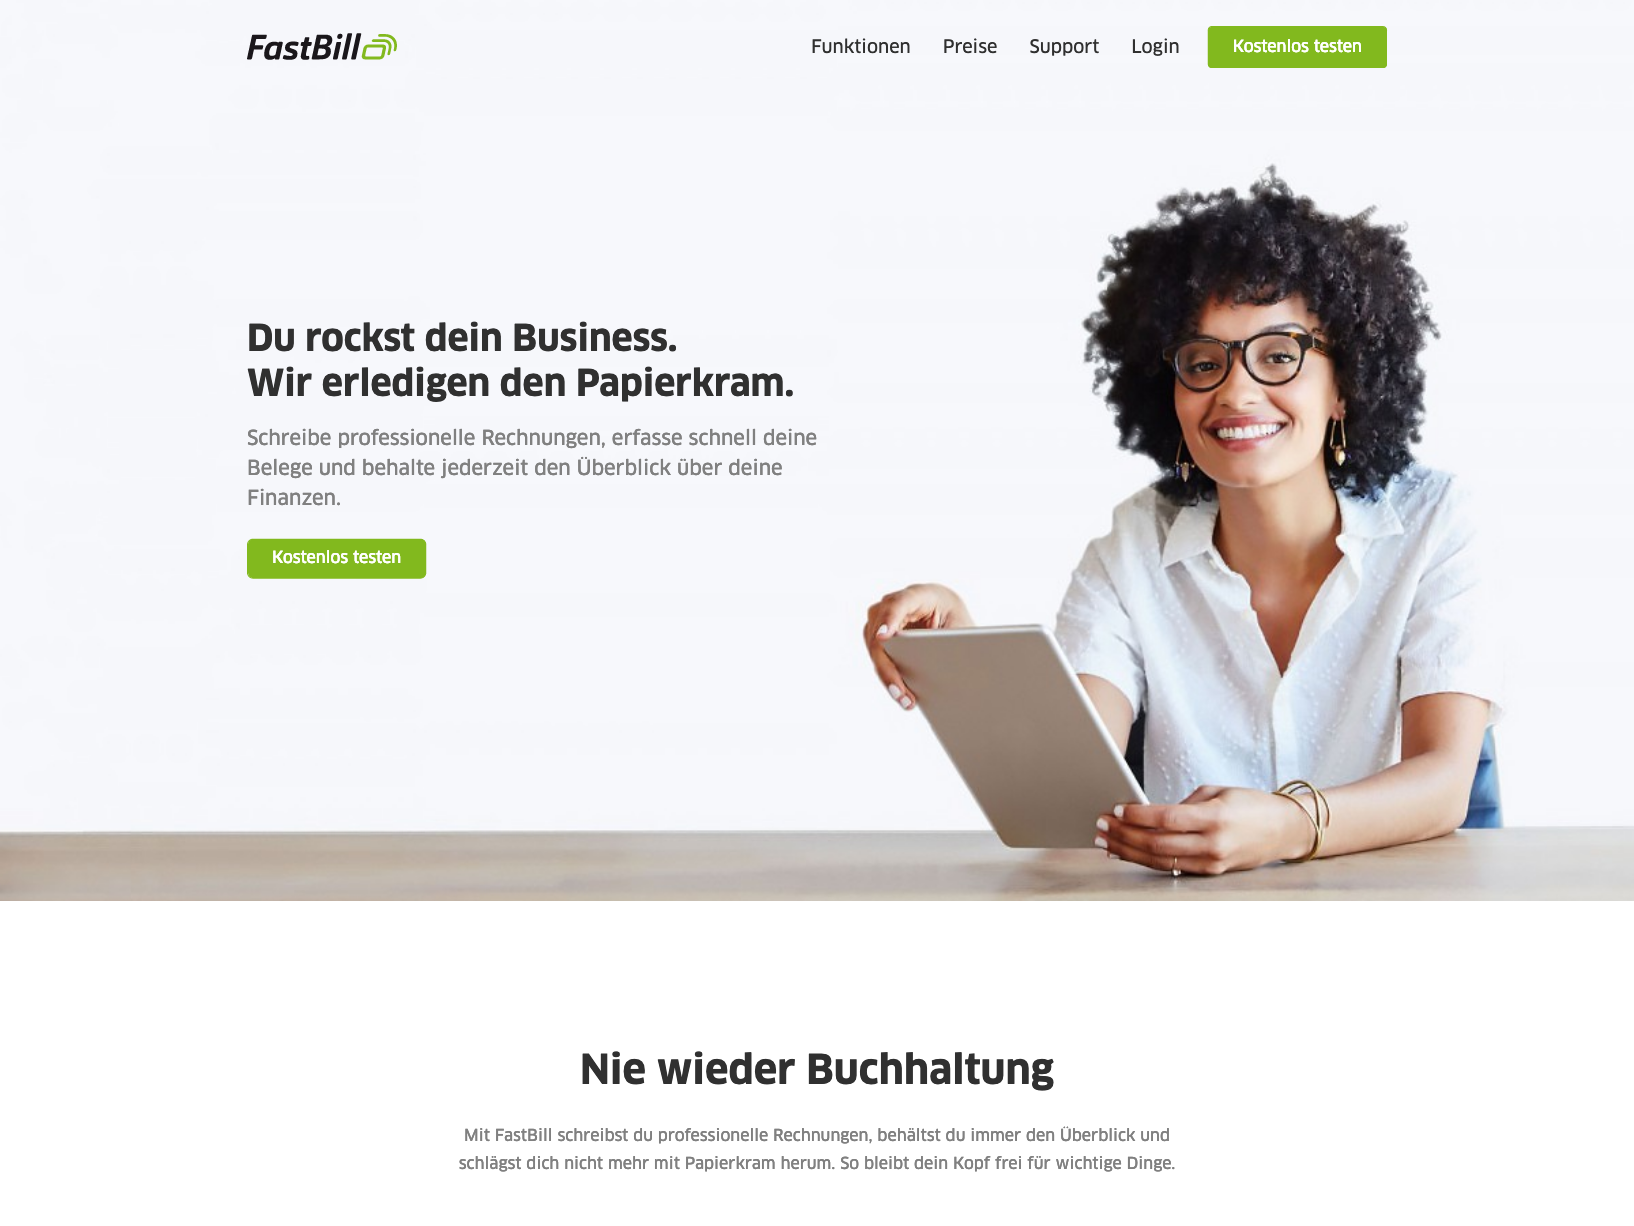 An embed embed post from my Dribbble account with the name FastBill - Homepage A/B Test